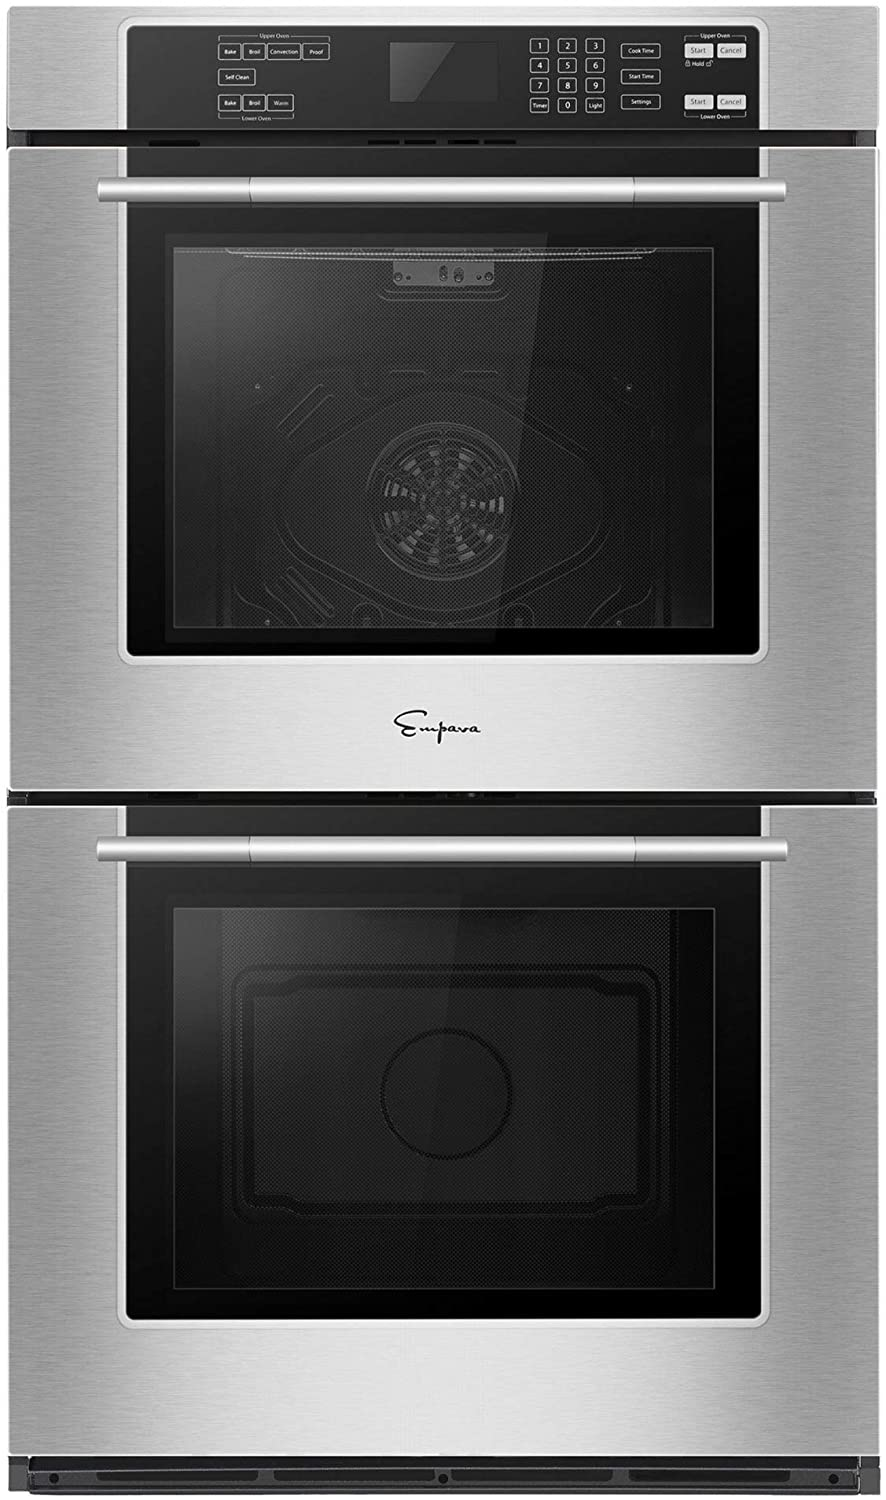 Empava 30 in Electric Double Wall Ovens Built-in Self-cleaning Convection Fan Touch Control EMPV-30WO02, Stainless Steel